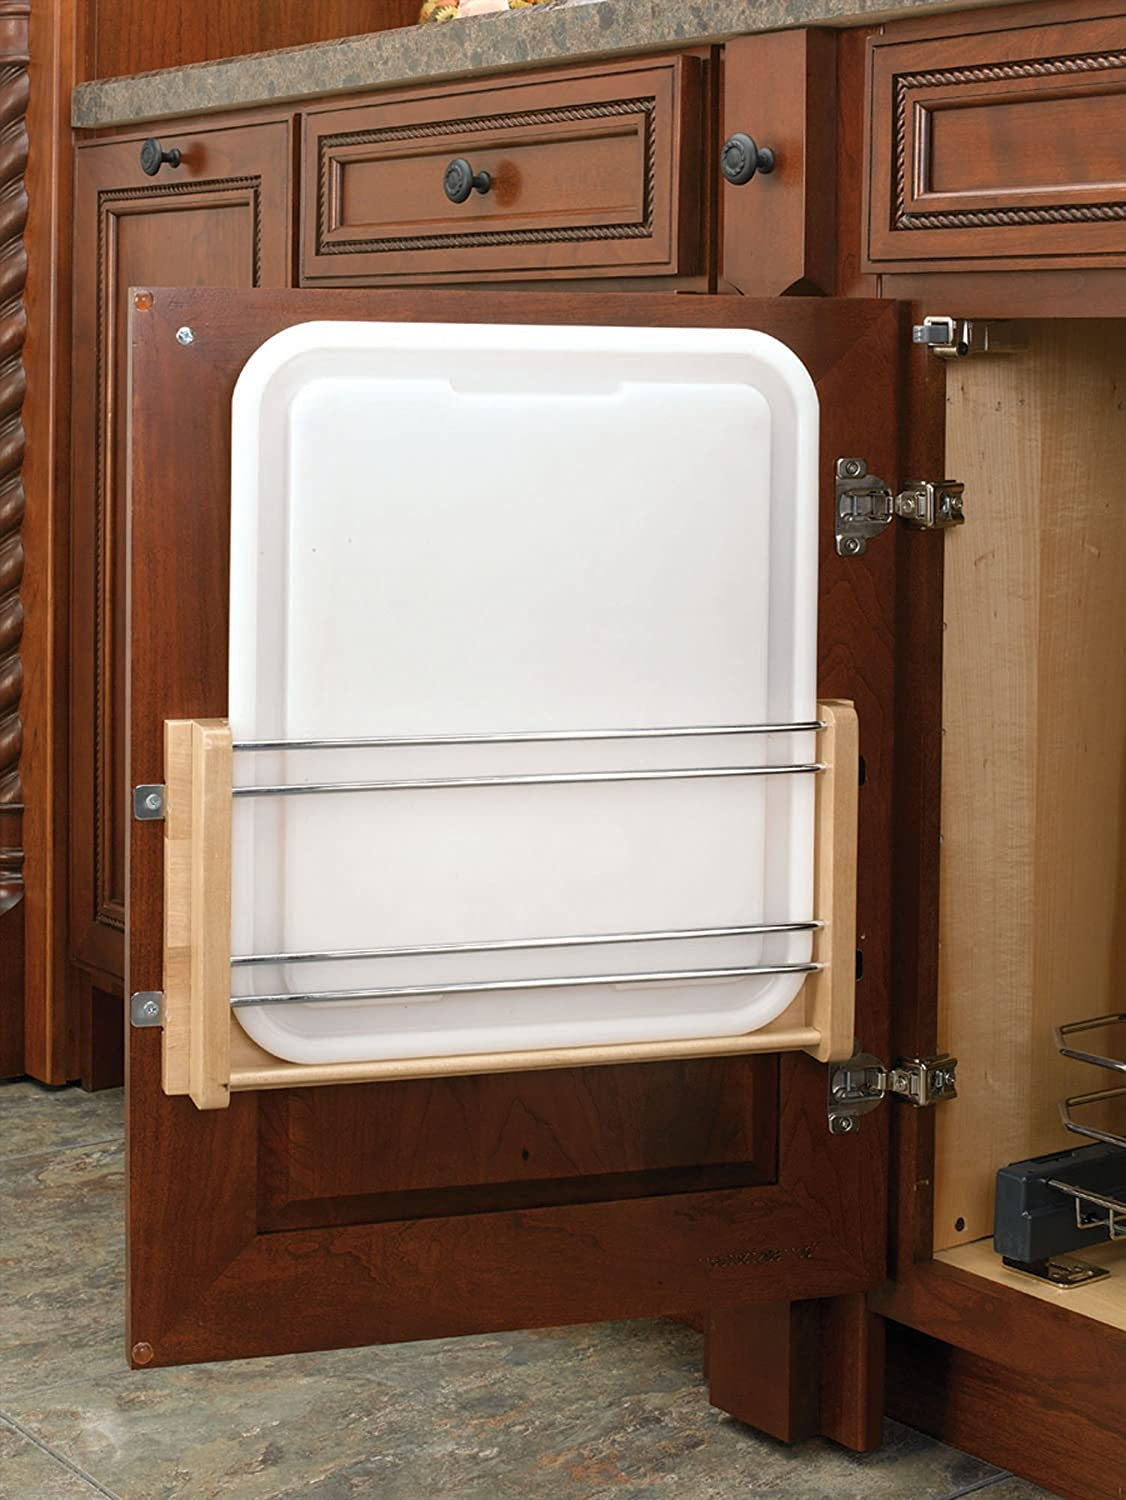 Rev-A-Shelf 4DMCB-18P Large Cabinet Door Mount Polymer Cutting Board